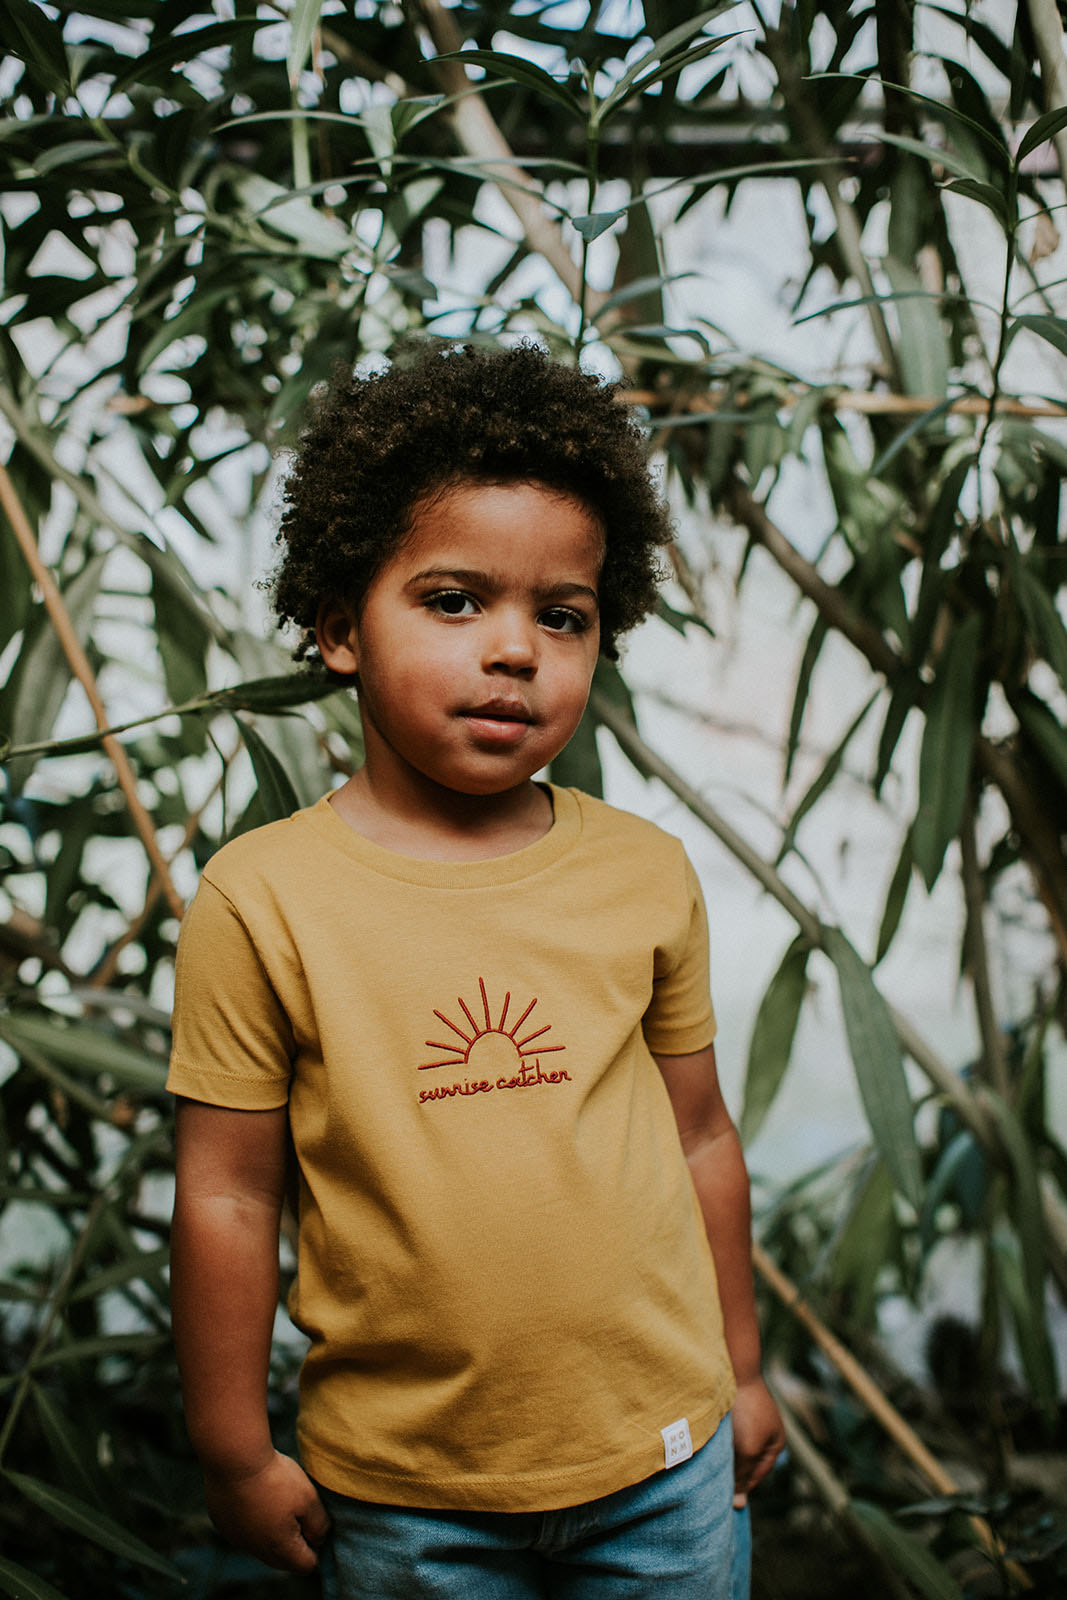 Sunrise catcher t-shirt for kids by Mangos on Monday